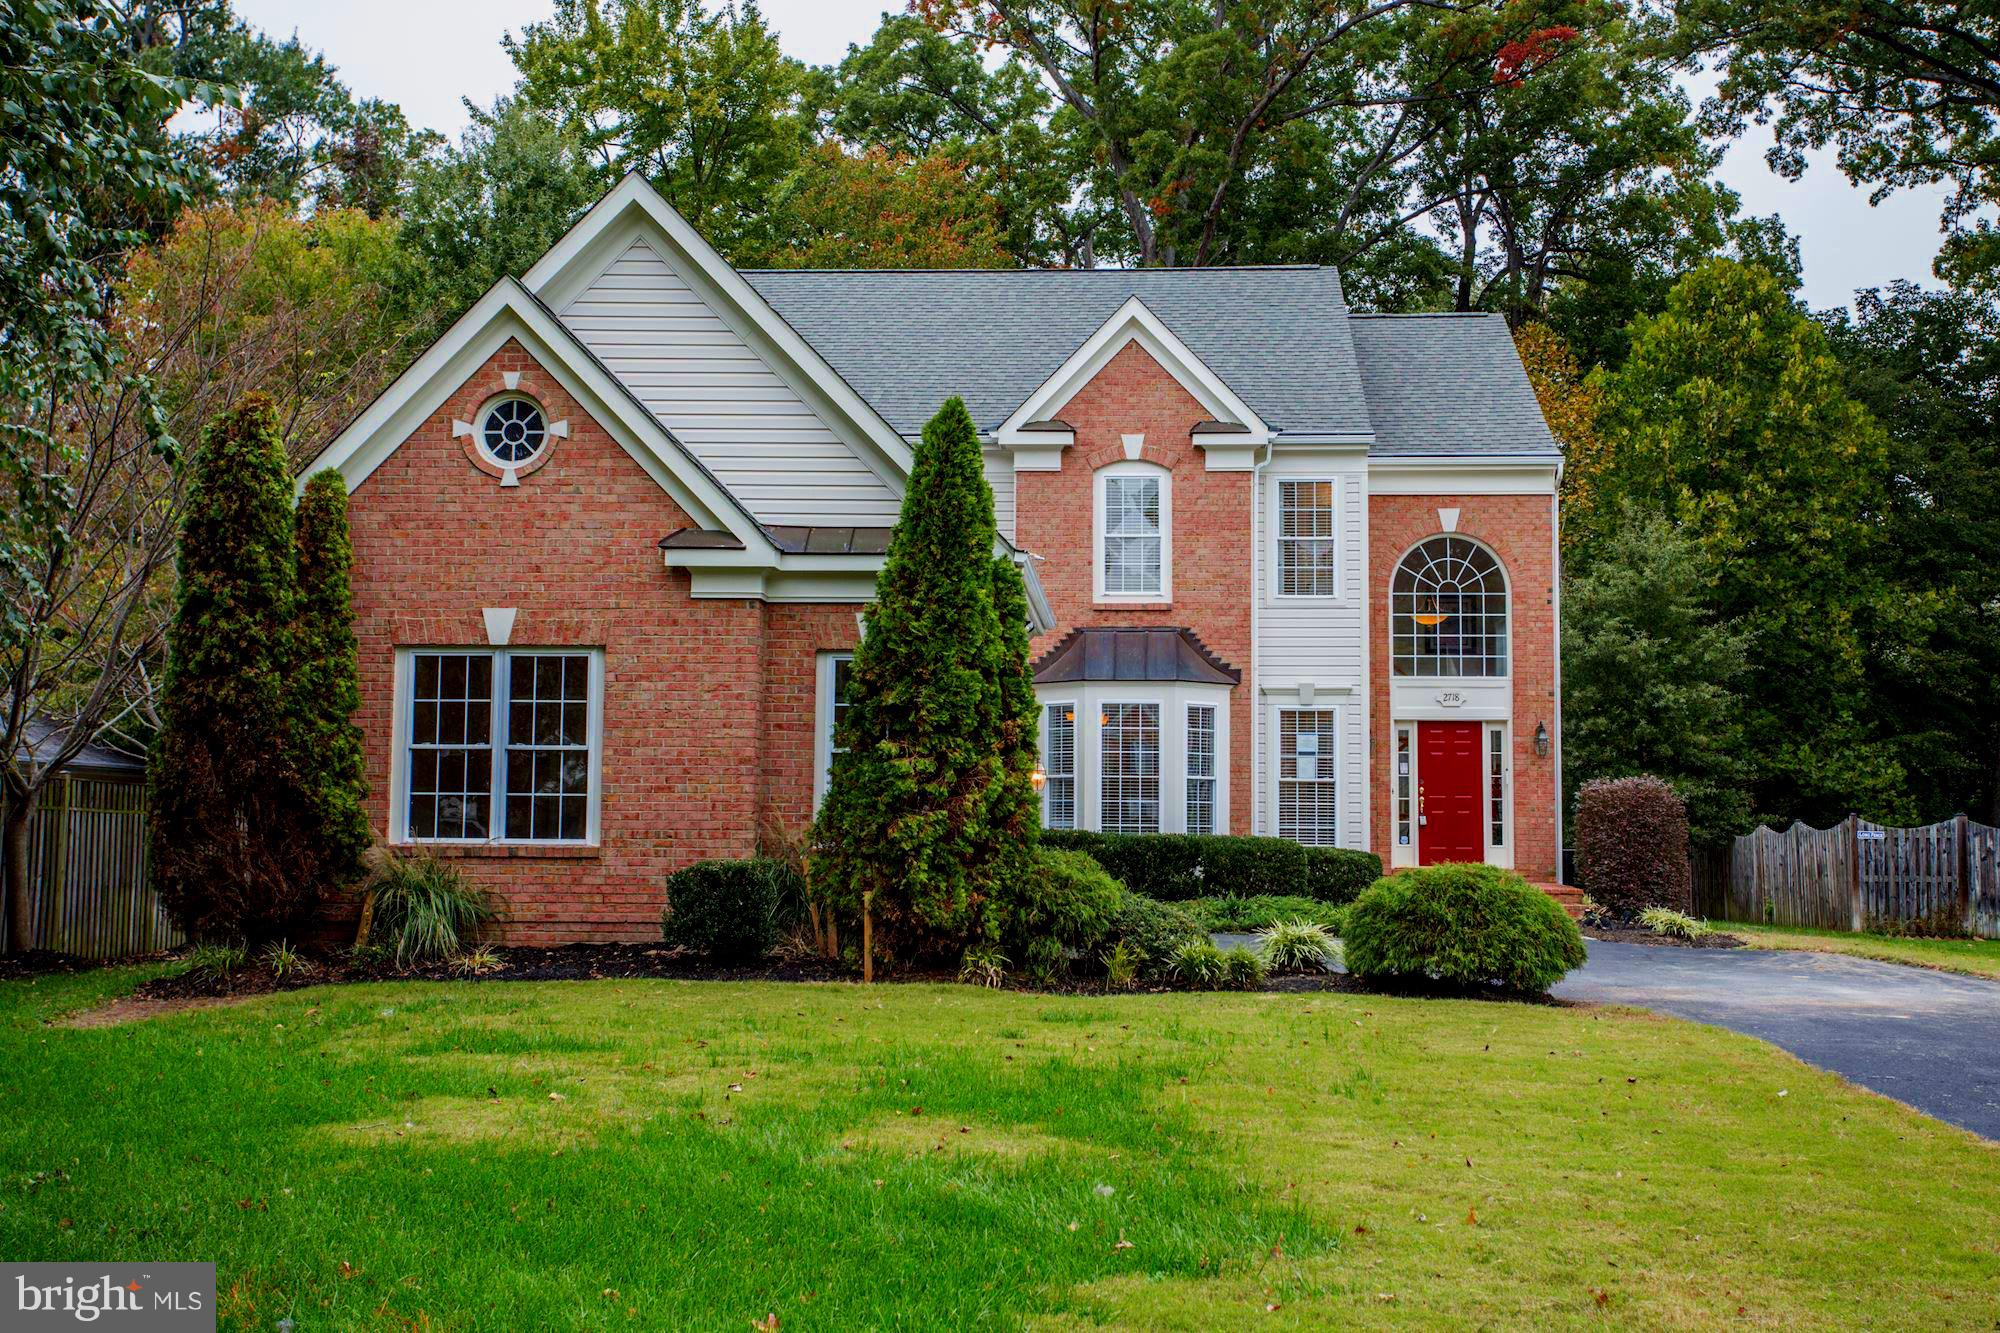 2718 WOODLAWN TRAIL, ALEXANDRIA, VA 22306